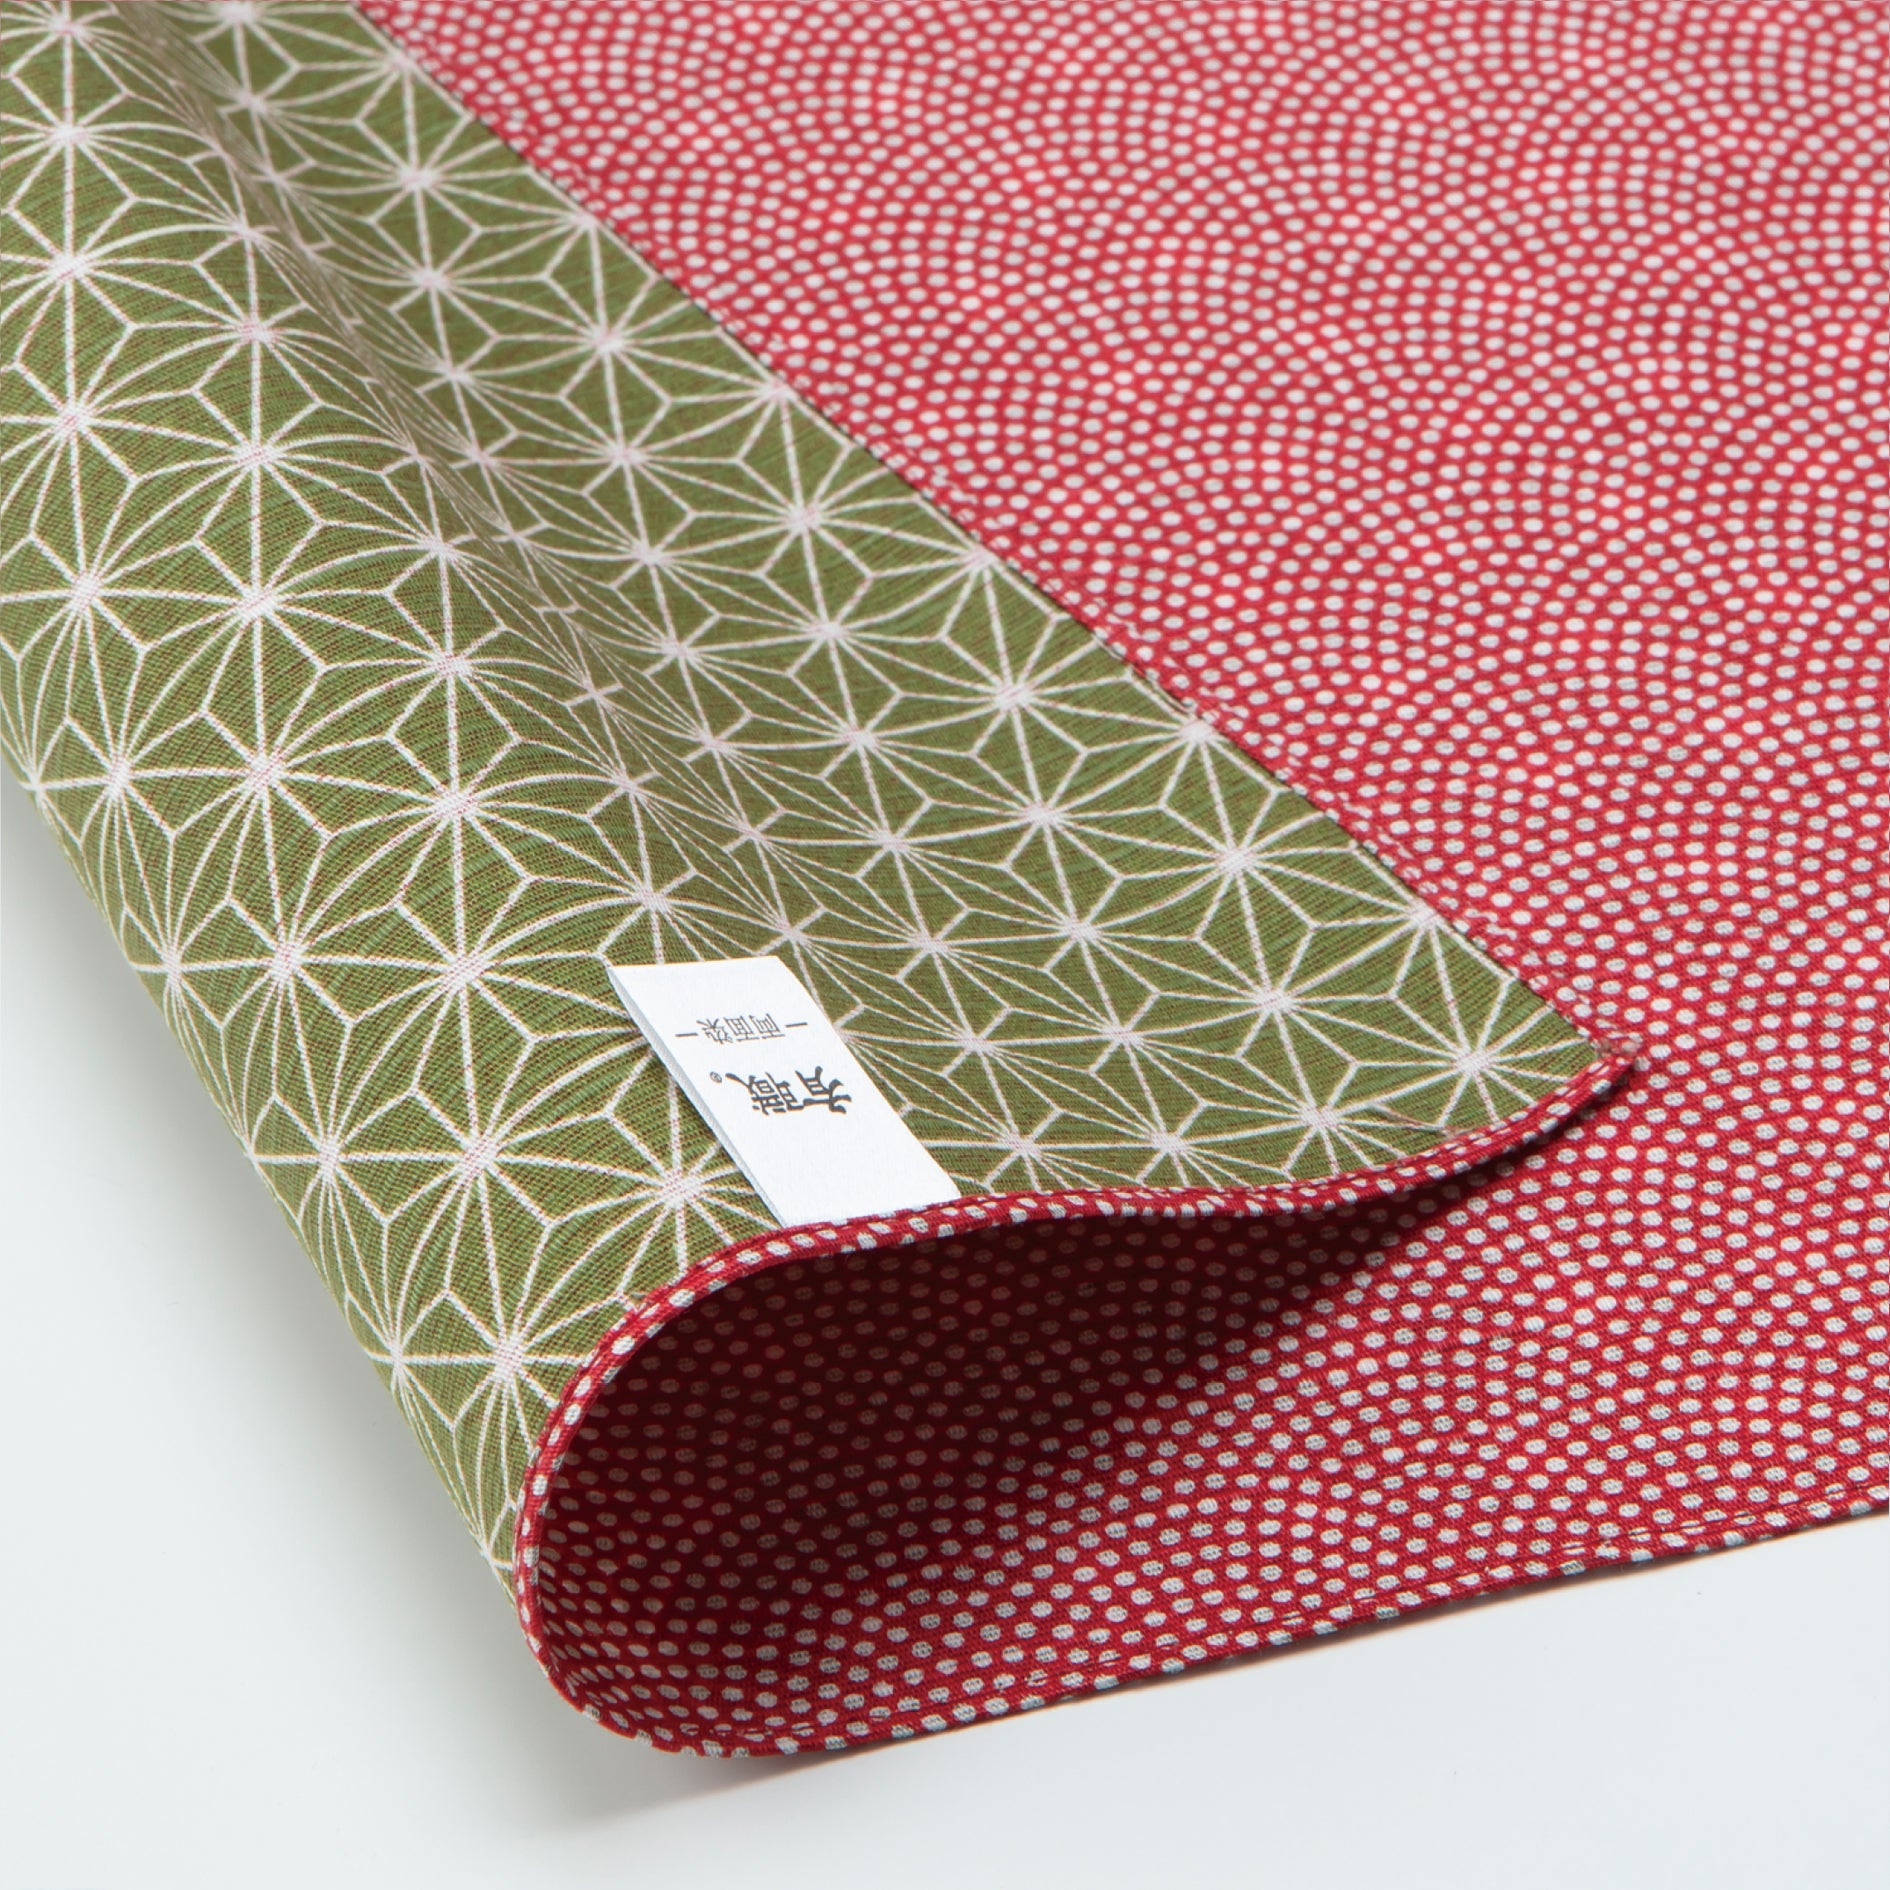 Double Sided Furoshiki Wrapping Cloth | Asanoha Nami Red & Green by Sanyo Shoji - Bento&co Japanese Bento Lunch Boxes and Kitchenware Specialists